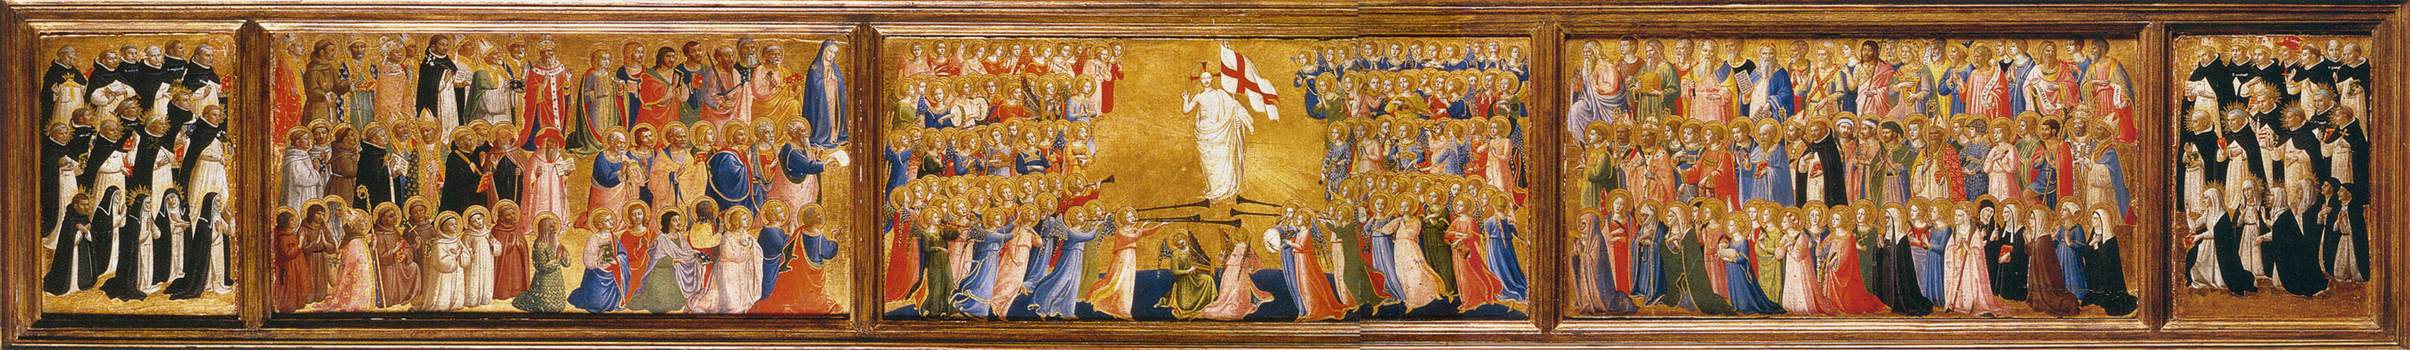 Predella of the San Domenico Altarpiece